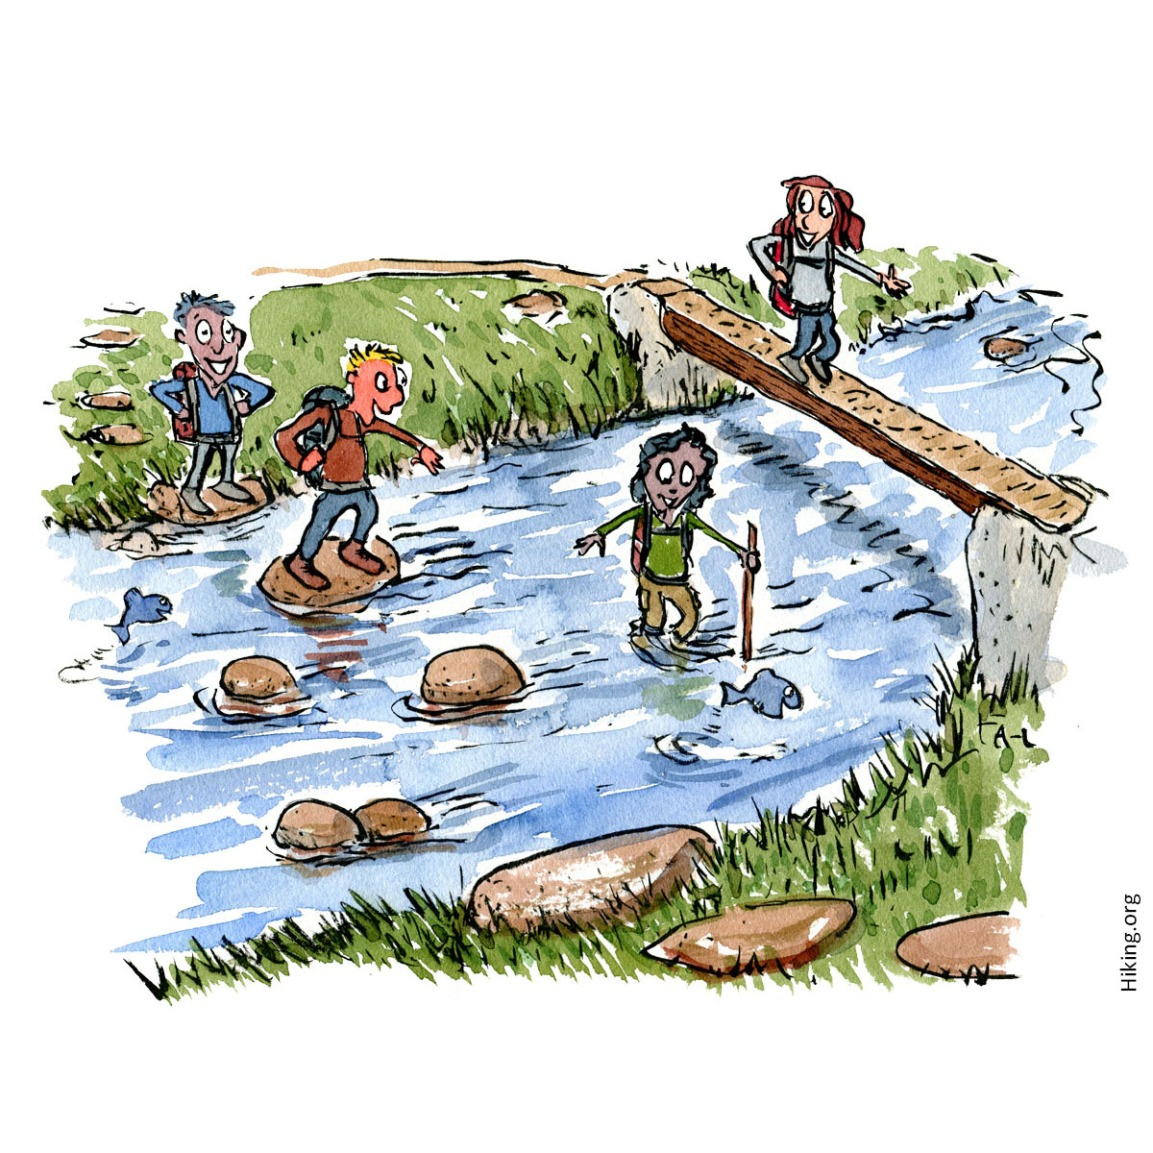 Psychology and ways of crossing astream